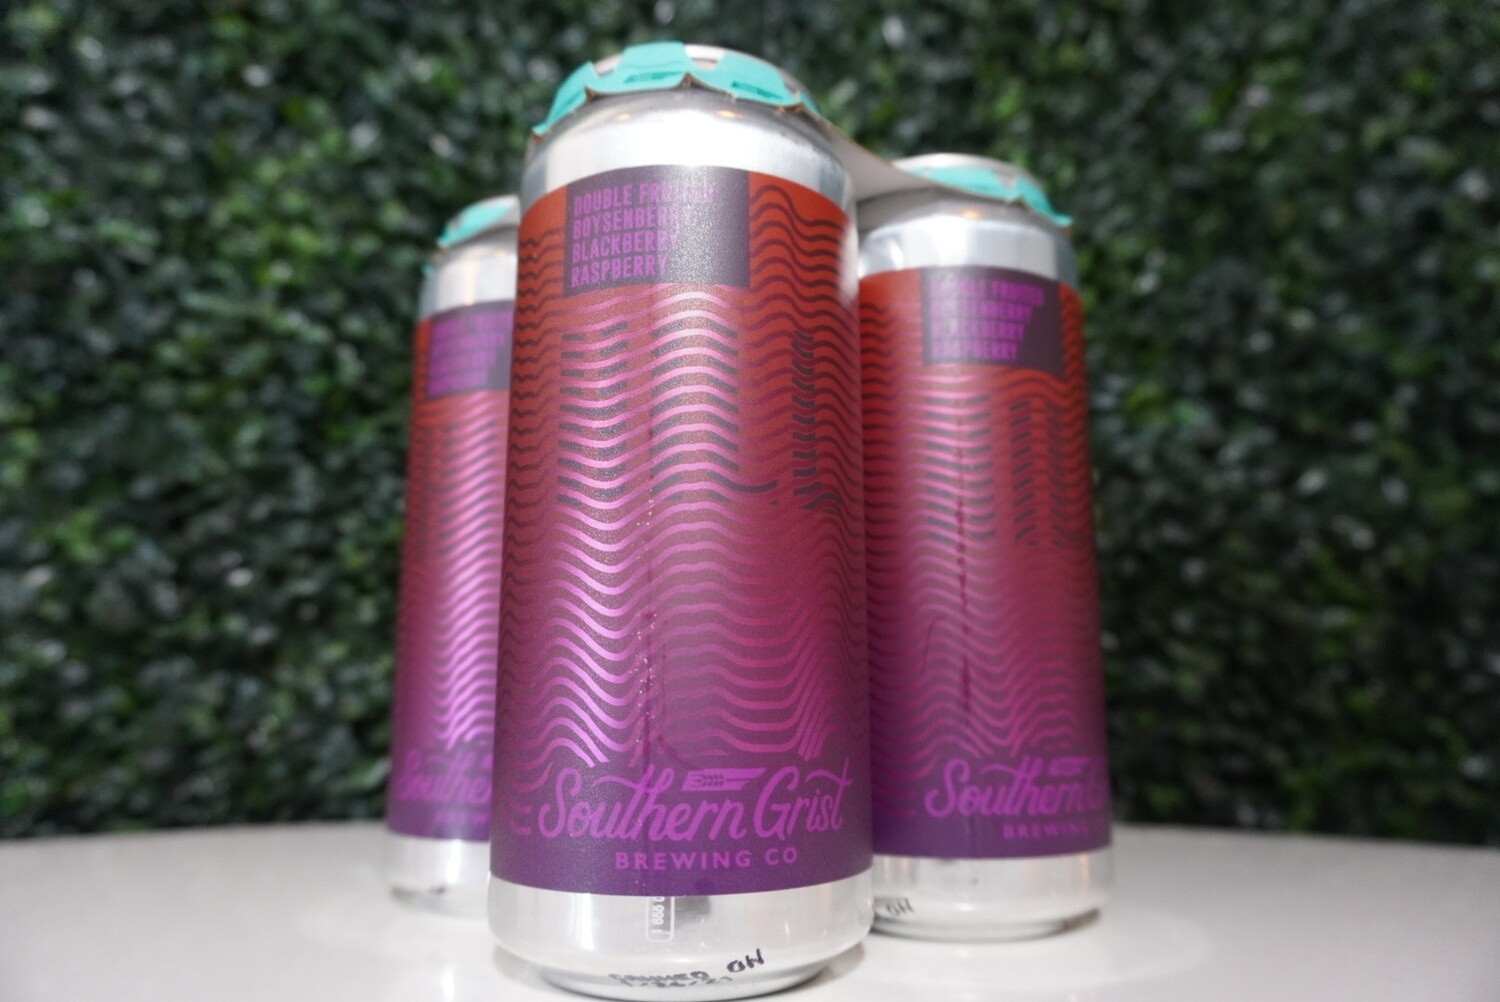 Southern Grist - Double Fruited Boysenberry Blackberry Raspberry Hill - Fruited Sour - 5.6% ABV - 16oz Can